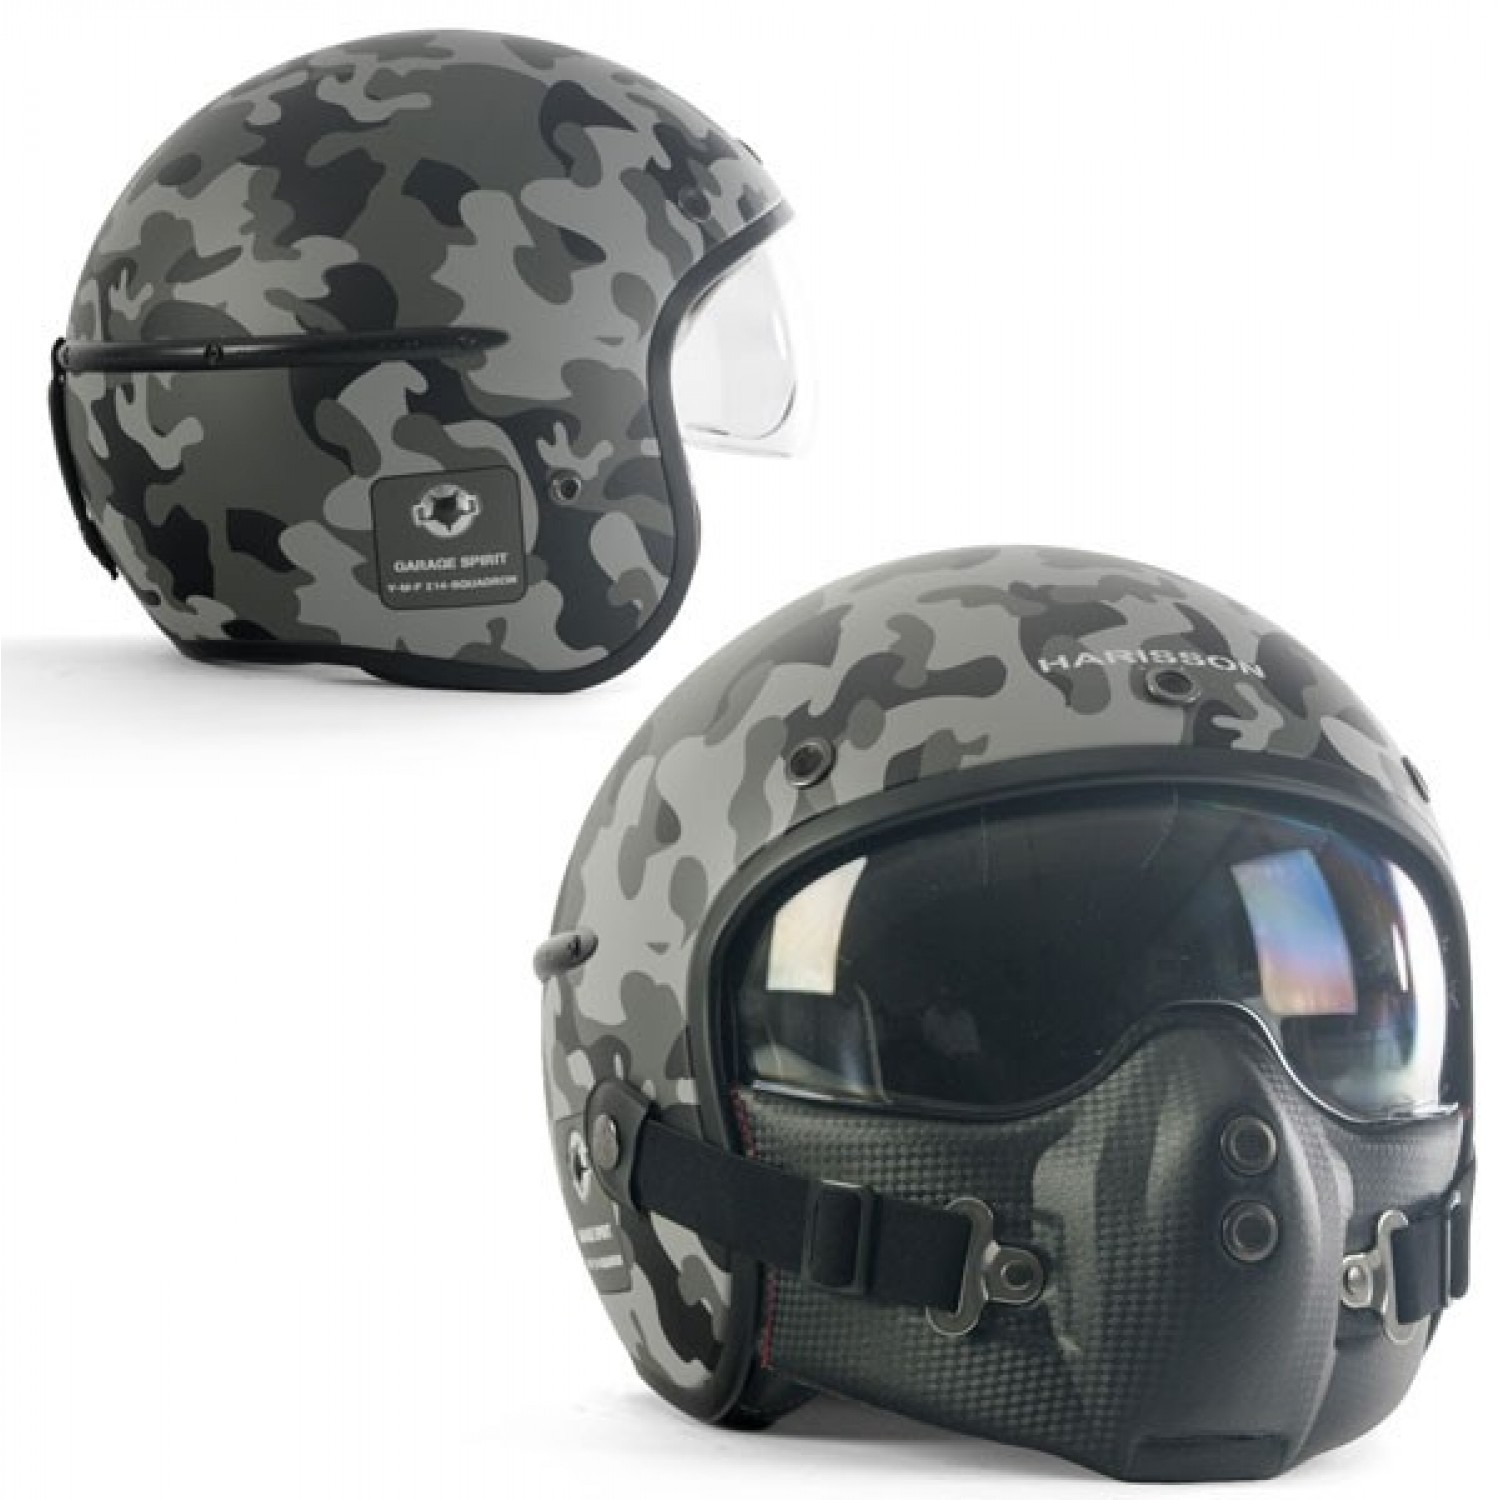 destockage casque harisson corsair camo taille m. Black Bedroom Furniture Sets. Home Design Ideas